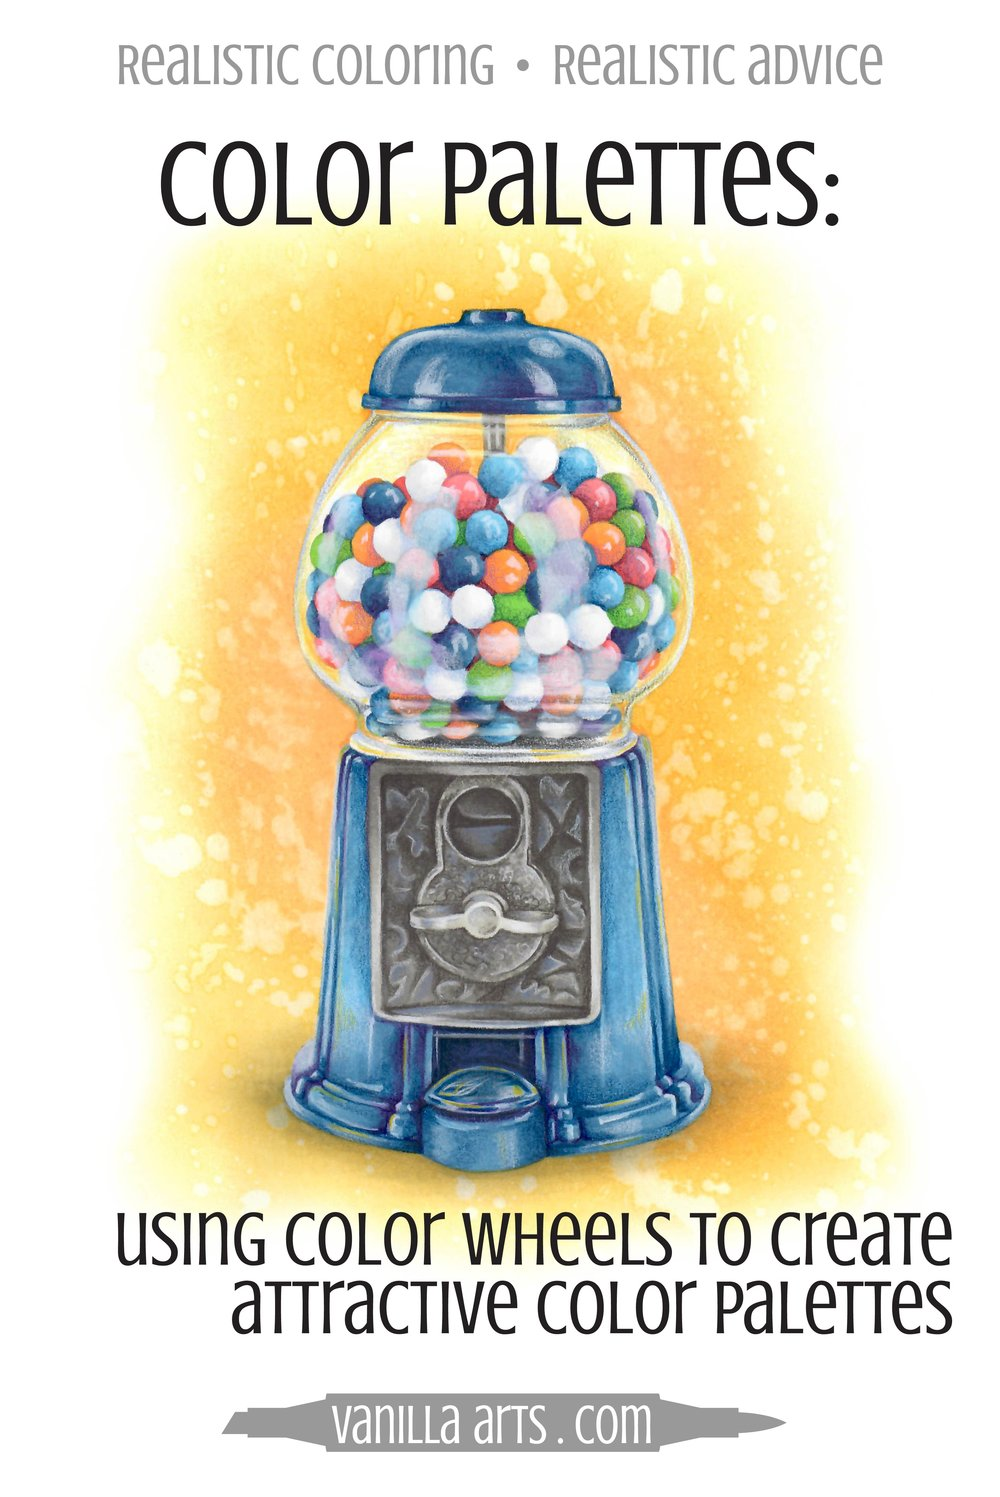 Get rid of that childish look! Learn to use a color wheel to pick mature color palettes for your adult coloring projects. FREE Copic Marker color wheel included! | VanillaArts.com